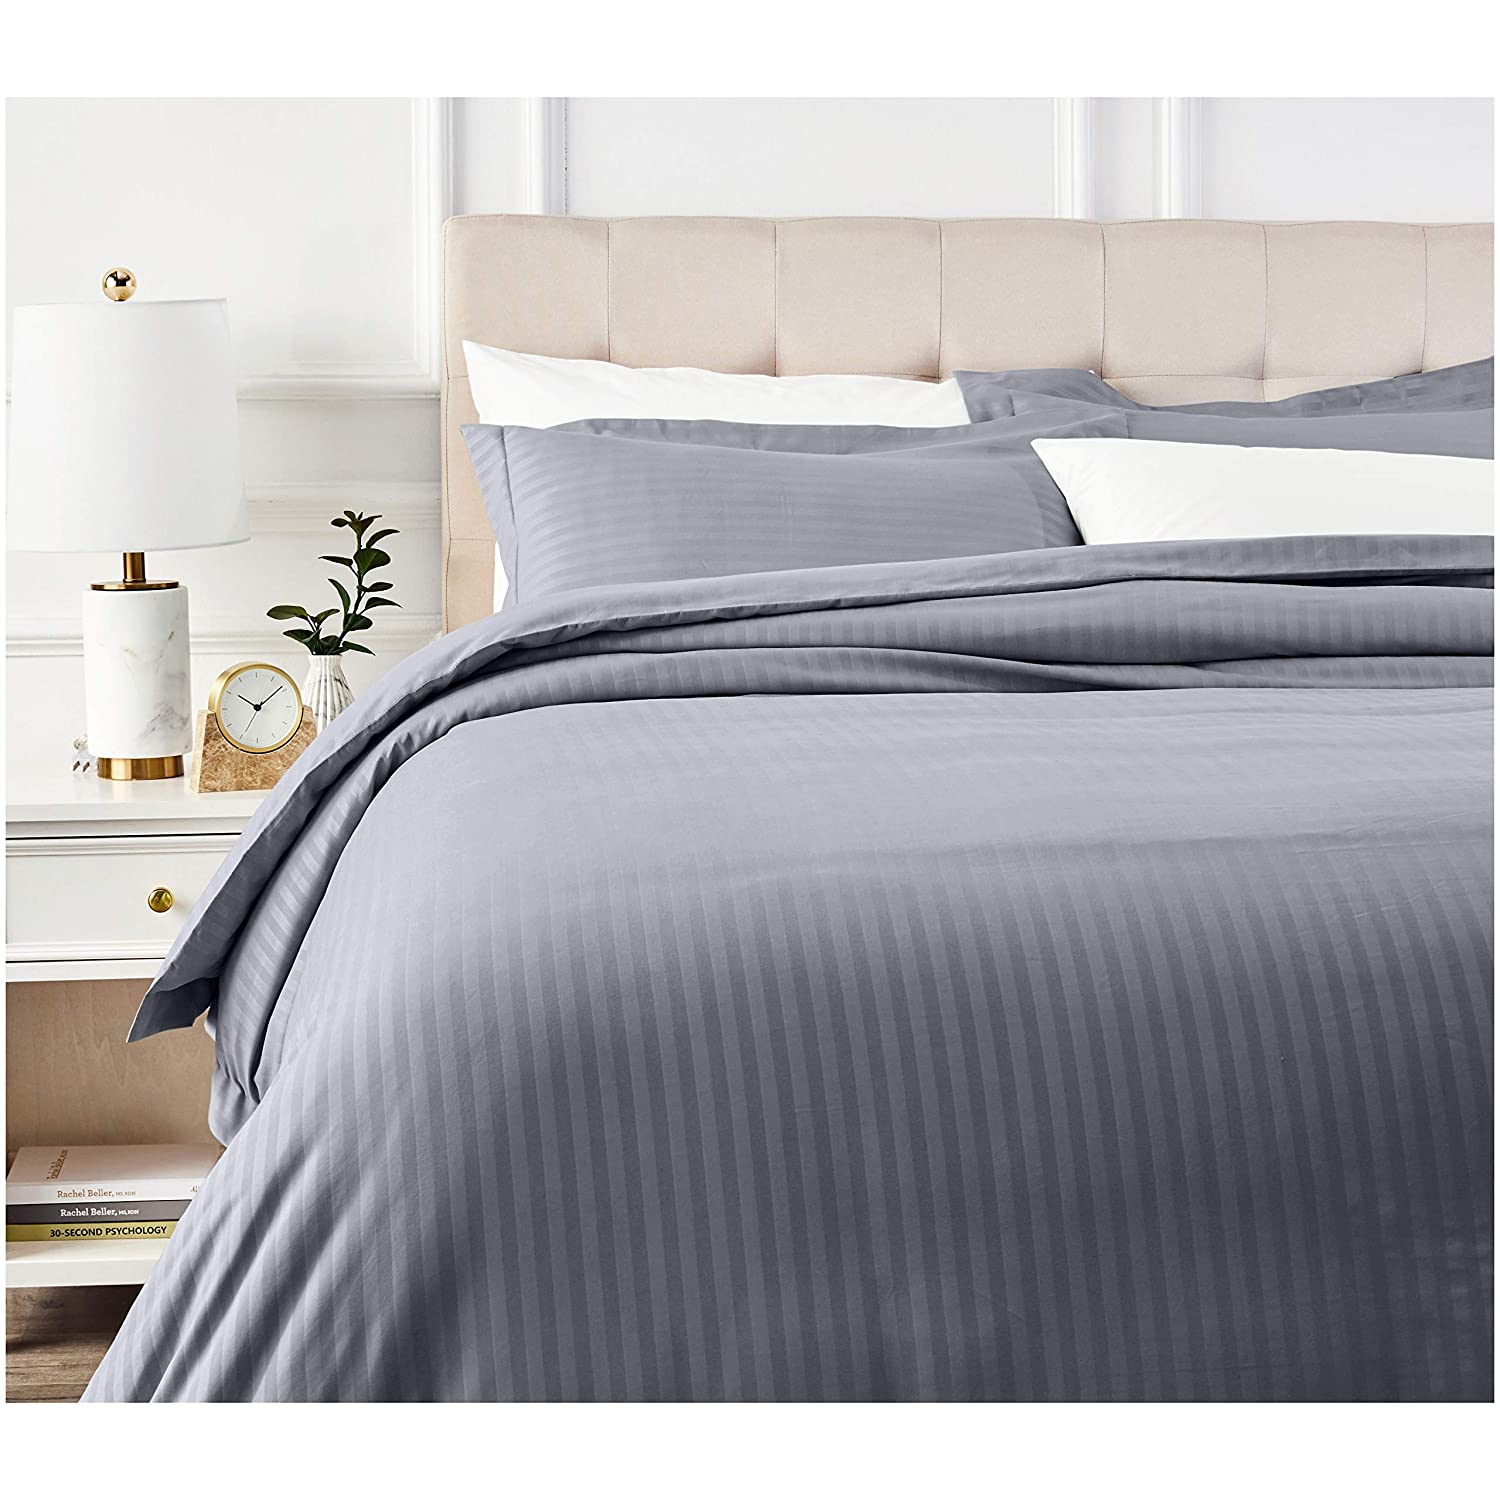 AmazonBasics Deluxe Microfiber Duvet Cover Set - Full/Queen, Dark Grey